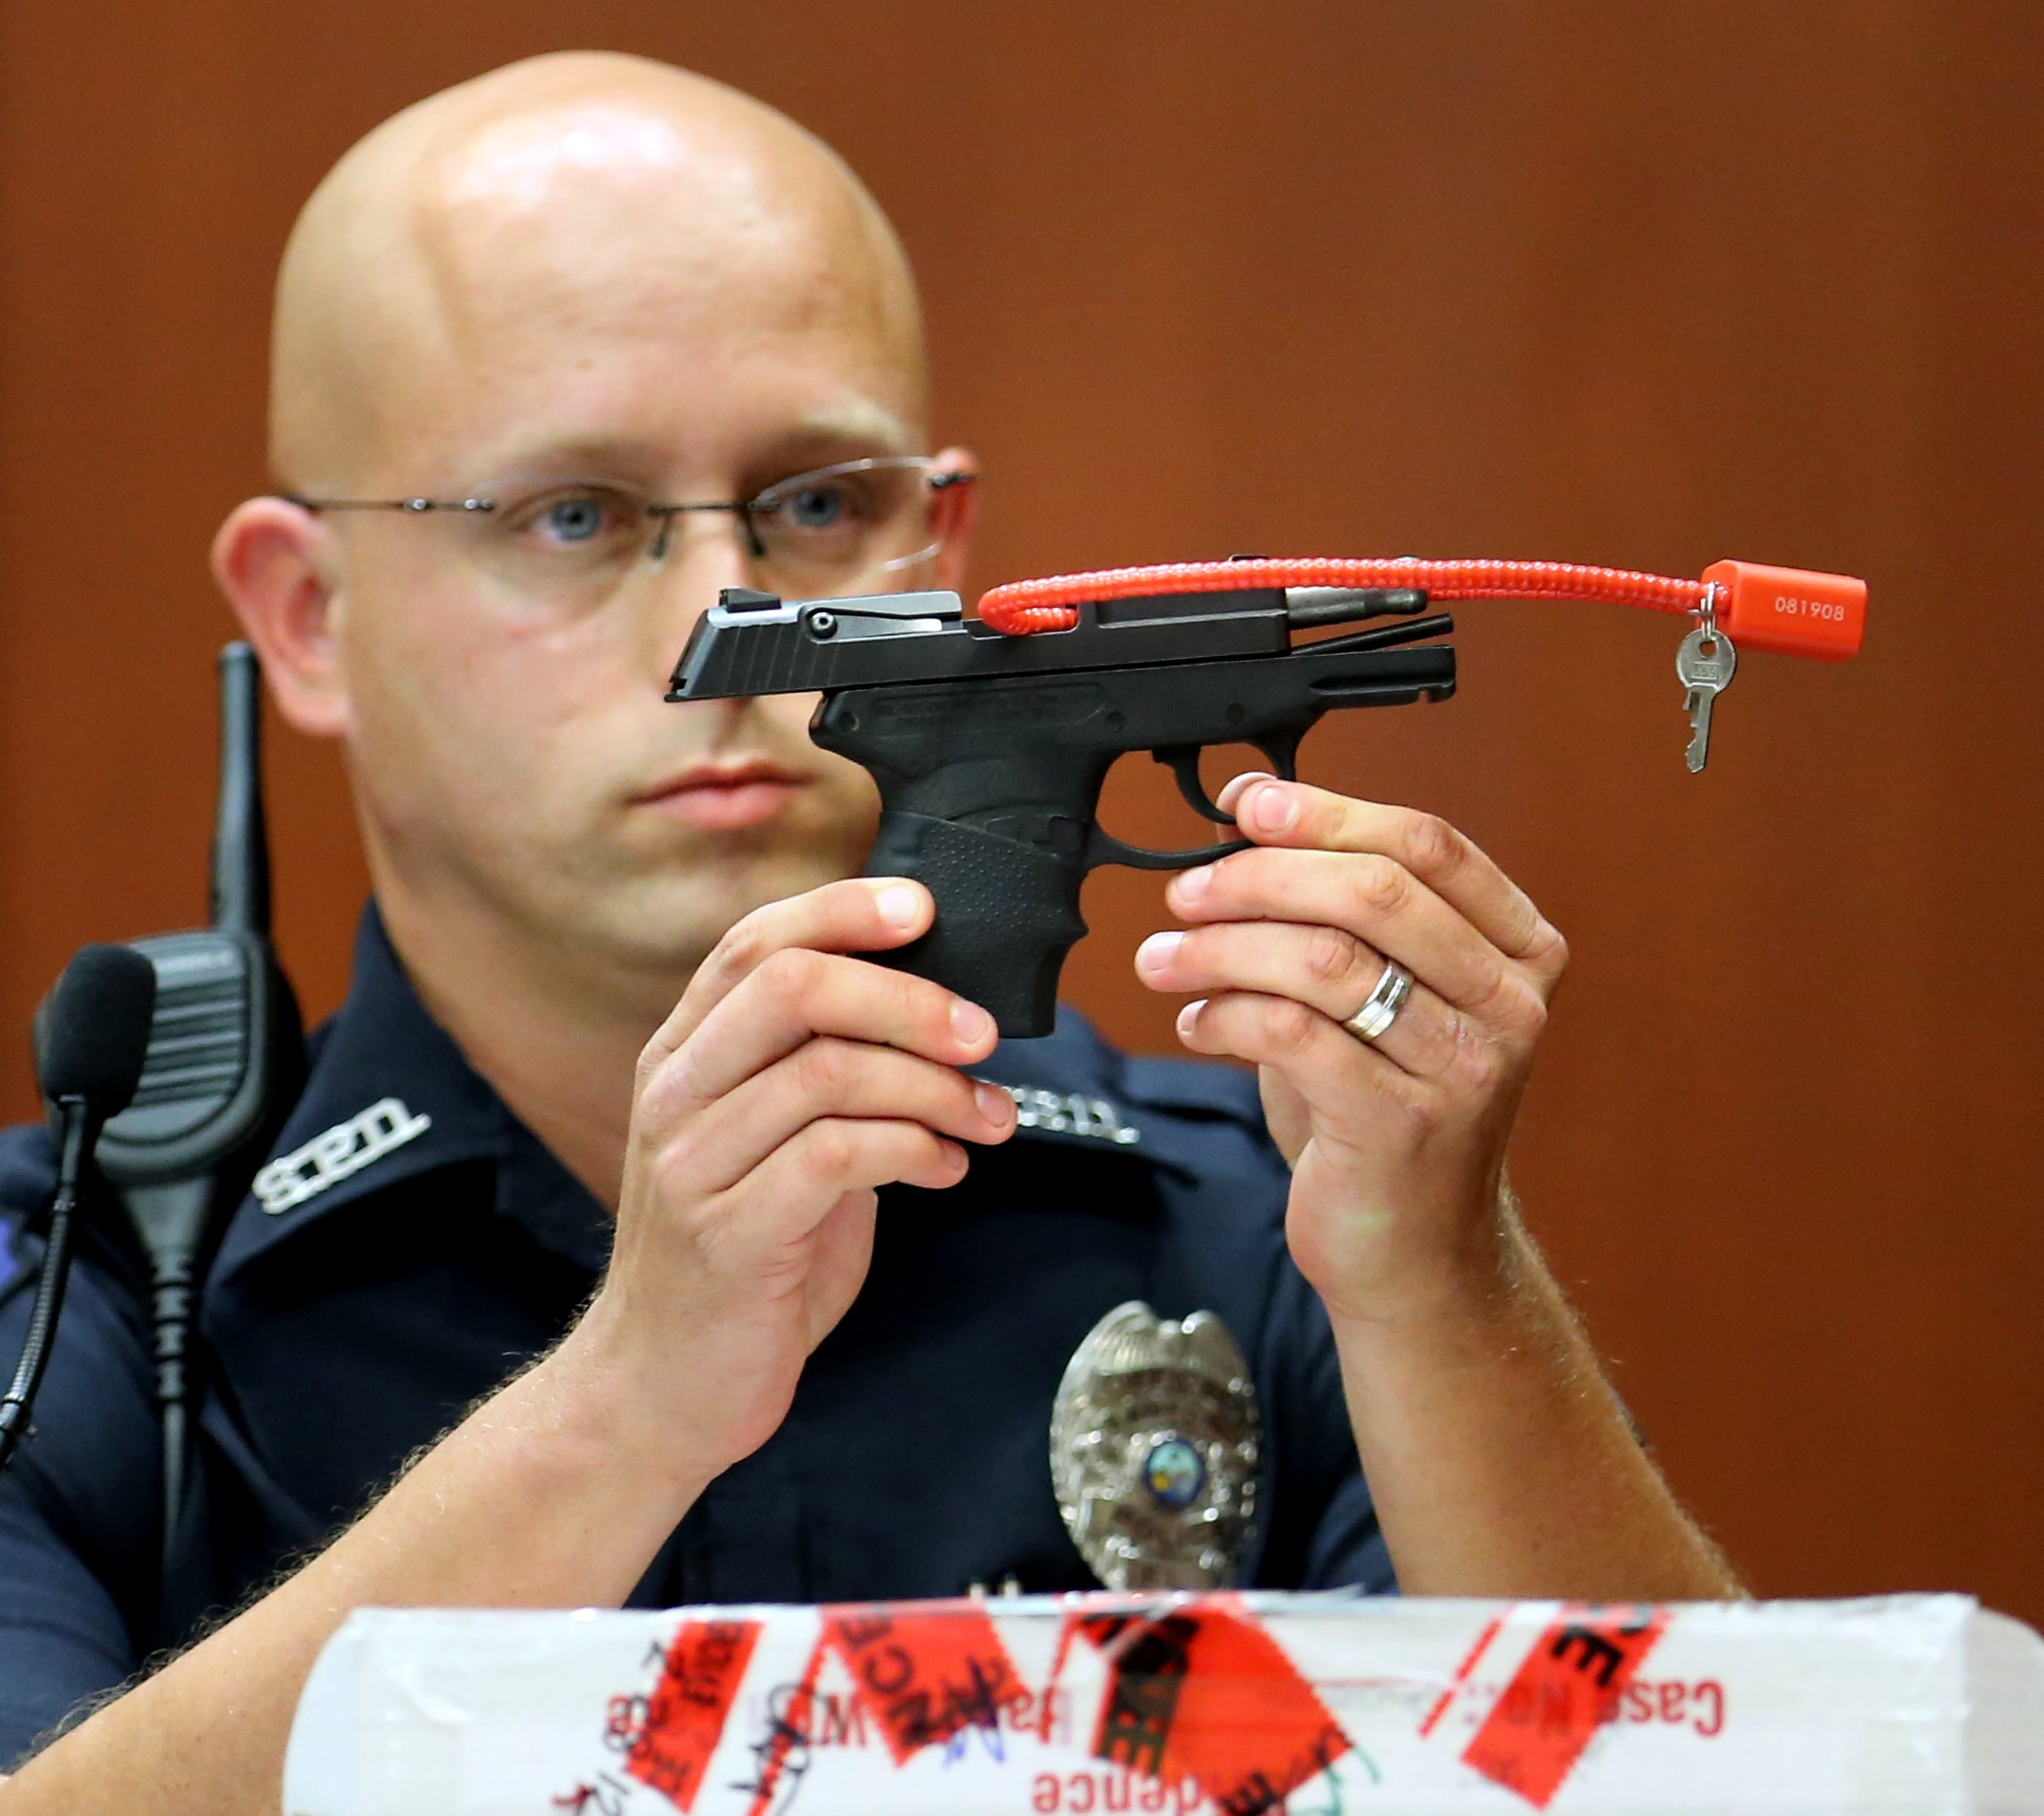 Sanford police officer Timothy Smith holds up the gun that was used to kill Trayvon Martin, while testifying on the 15th day of George Zimmerman's trial in Seminole Circuit Court in Sanford, Fla., June 28, 2013.